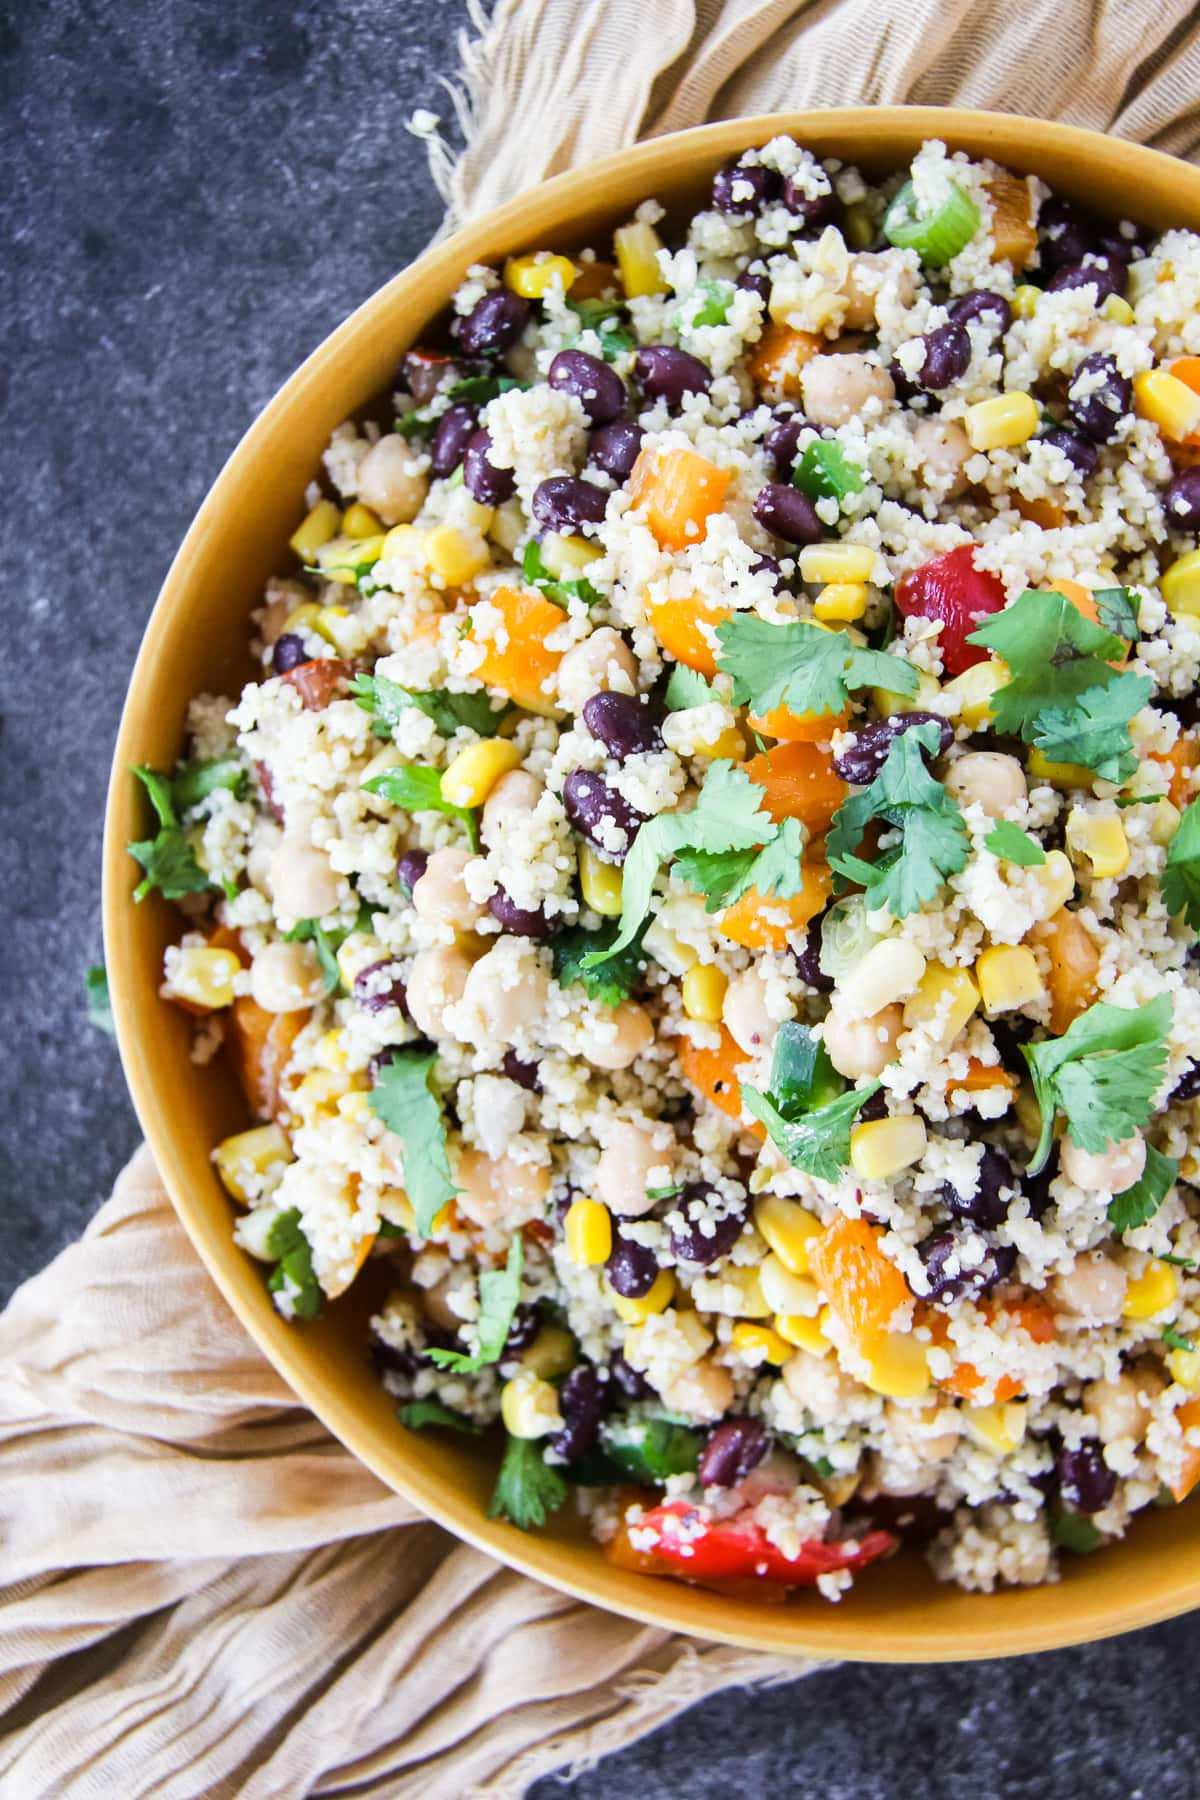 a top down view of a colourful Tex Mex Couscous Salad in a mustard yellow bowl. the bowl is sitting on a soft cream napkin and dark background.